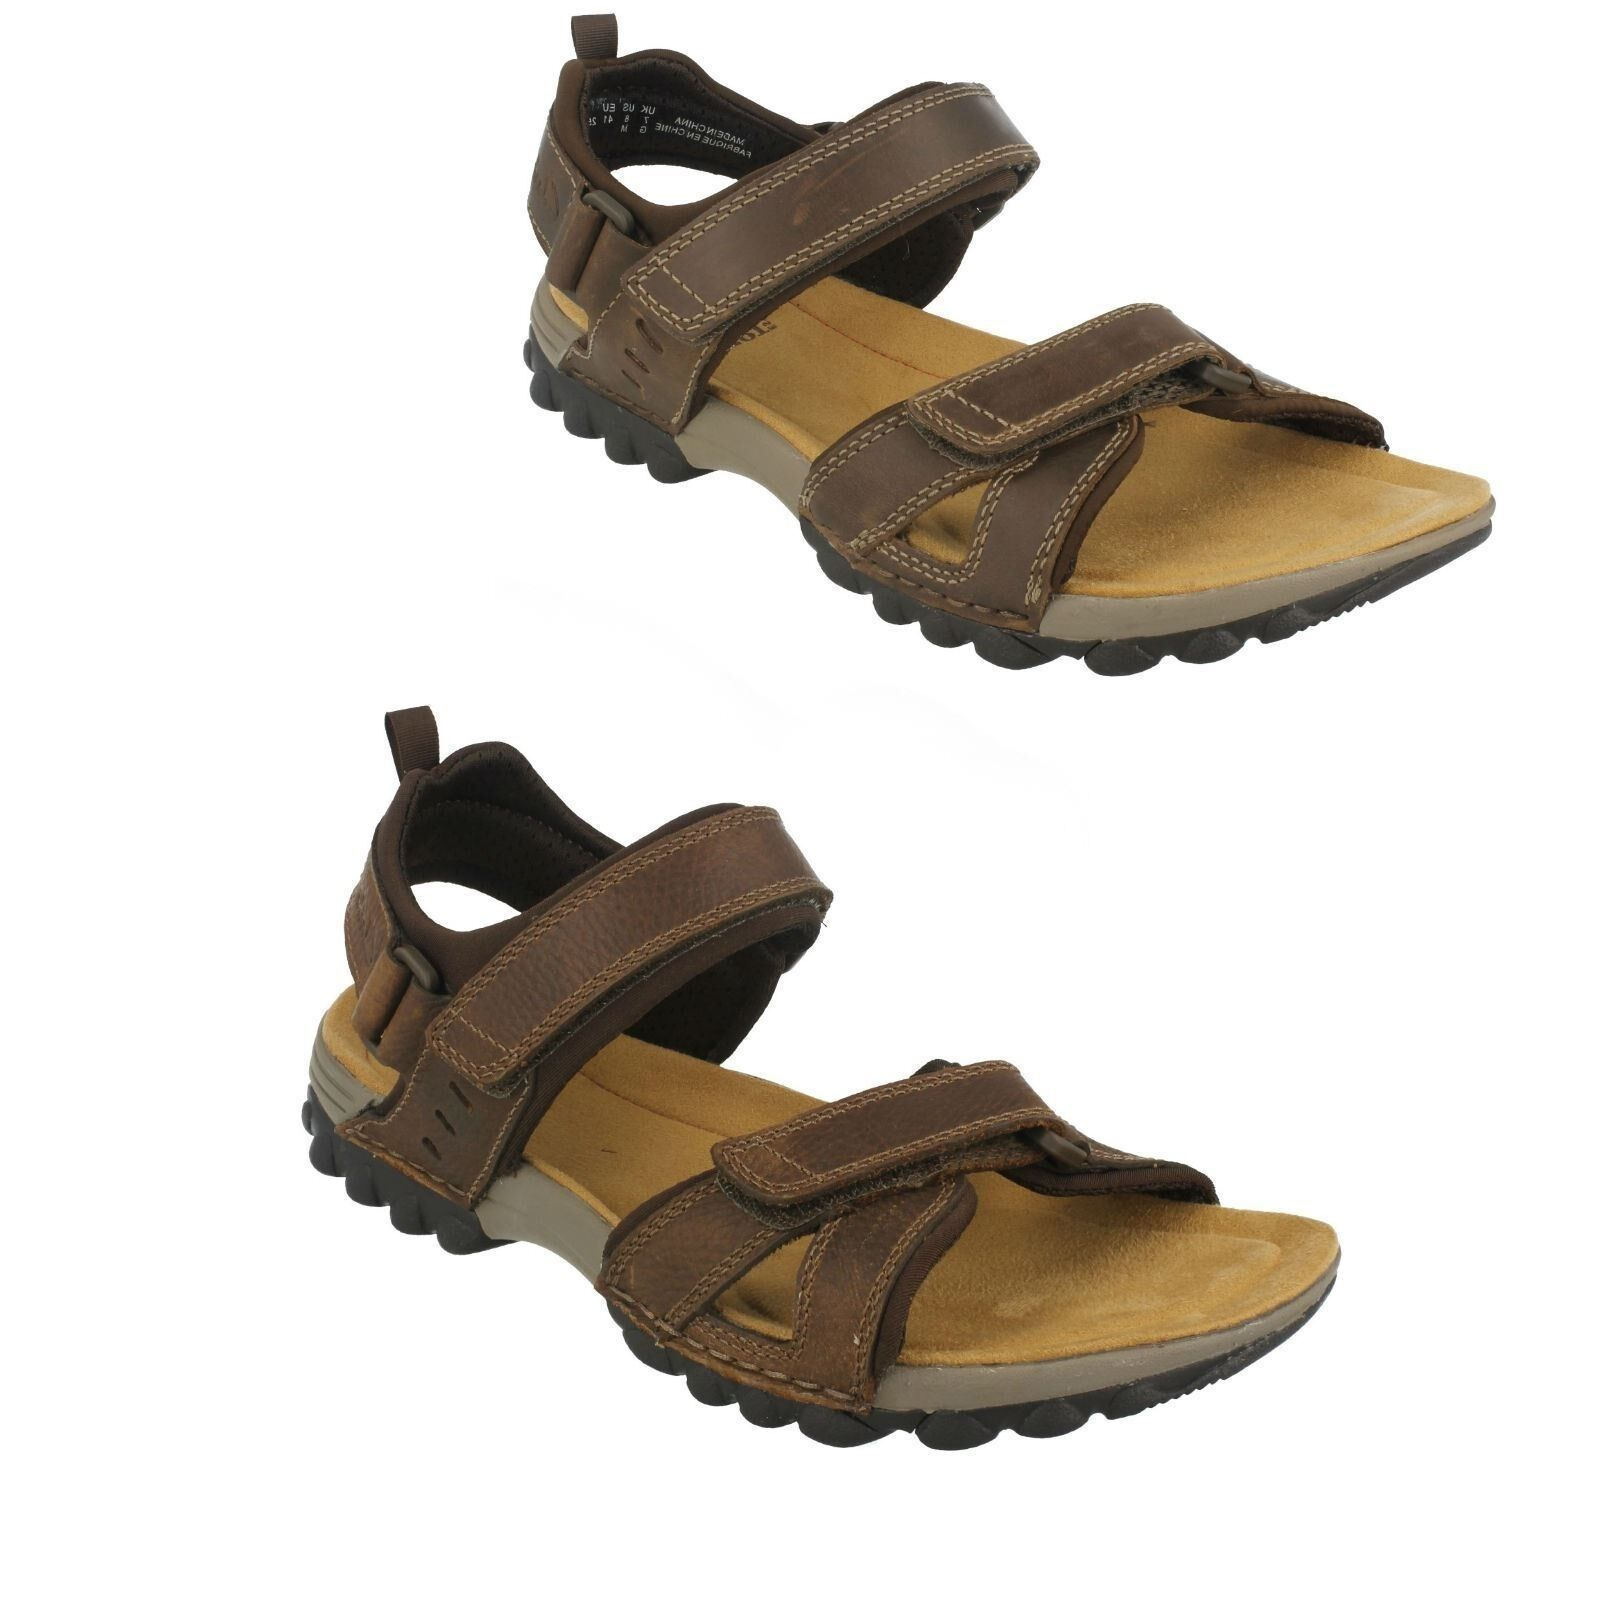 MENS CLARKS LEATHER RIPTAPE SLINGBACK CASUAL SUMMER SANDALS SHOES VEXTOR PART